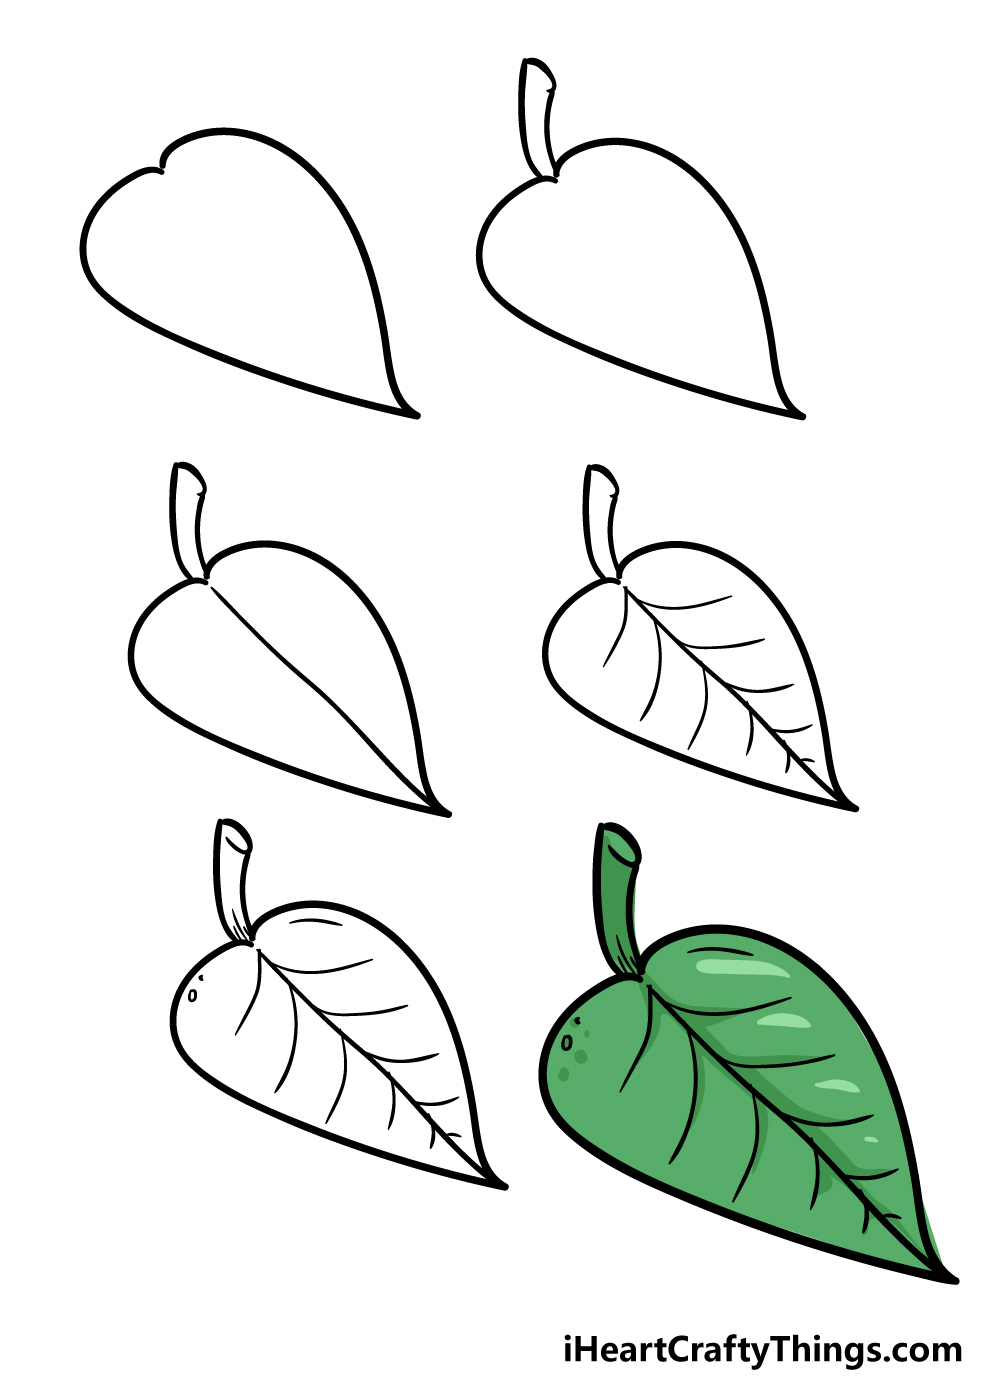 how to draw leaf in 6 steps